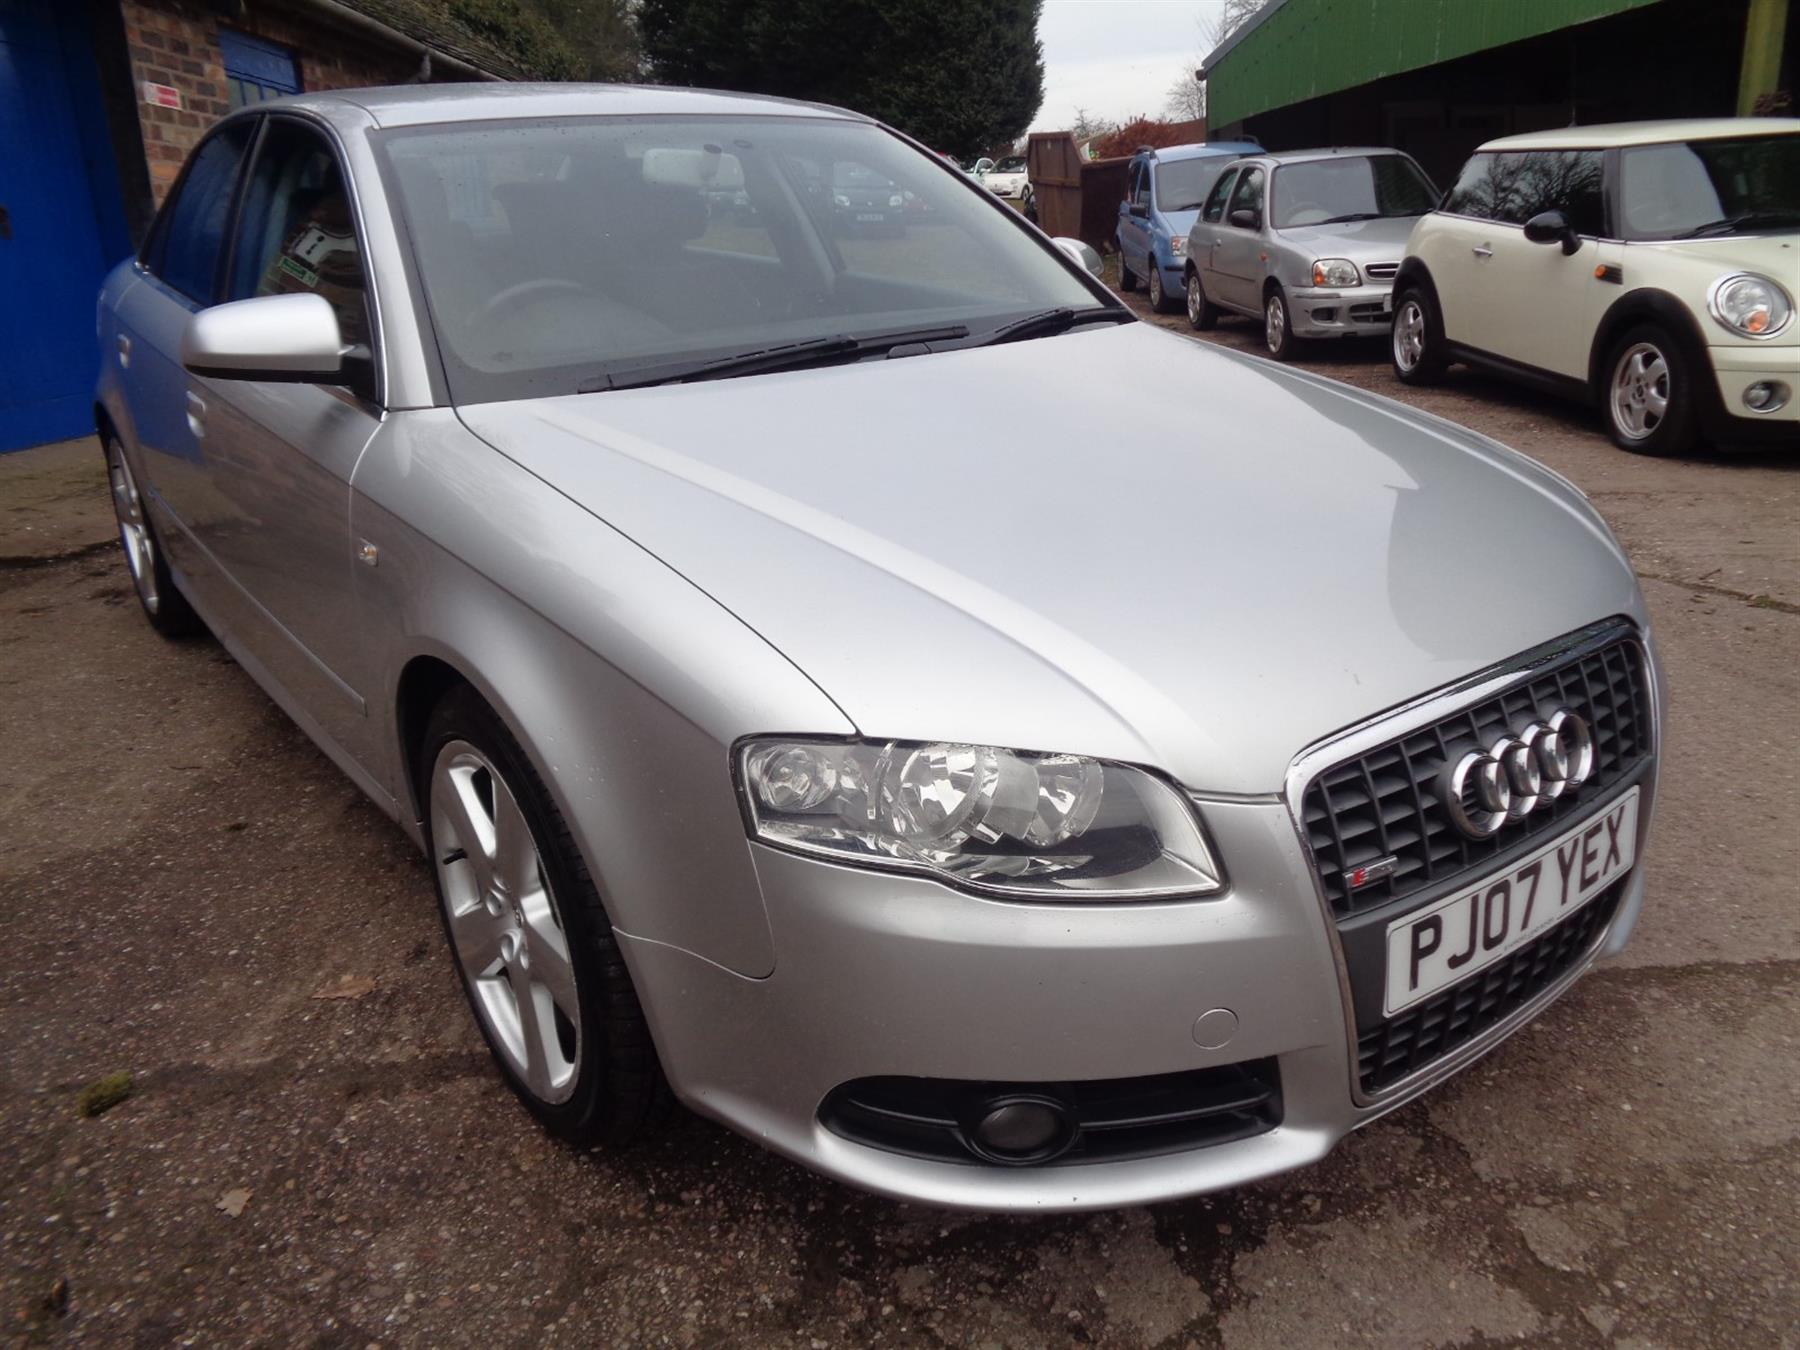 Cars for Sale Near Me Audi Fresh Audi Used Cars Near Me with the Best Dealership Dial 075 1131 0707